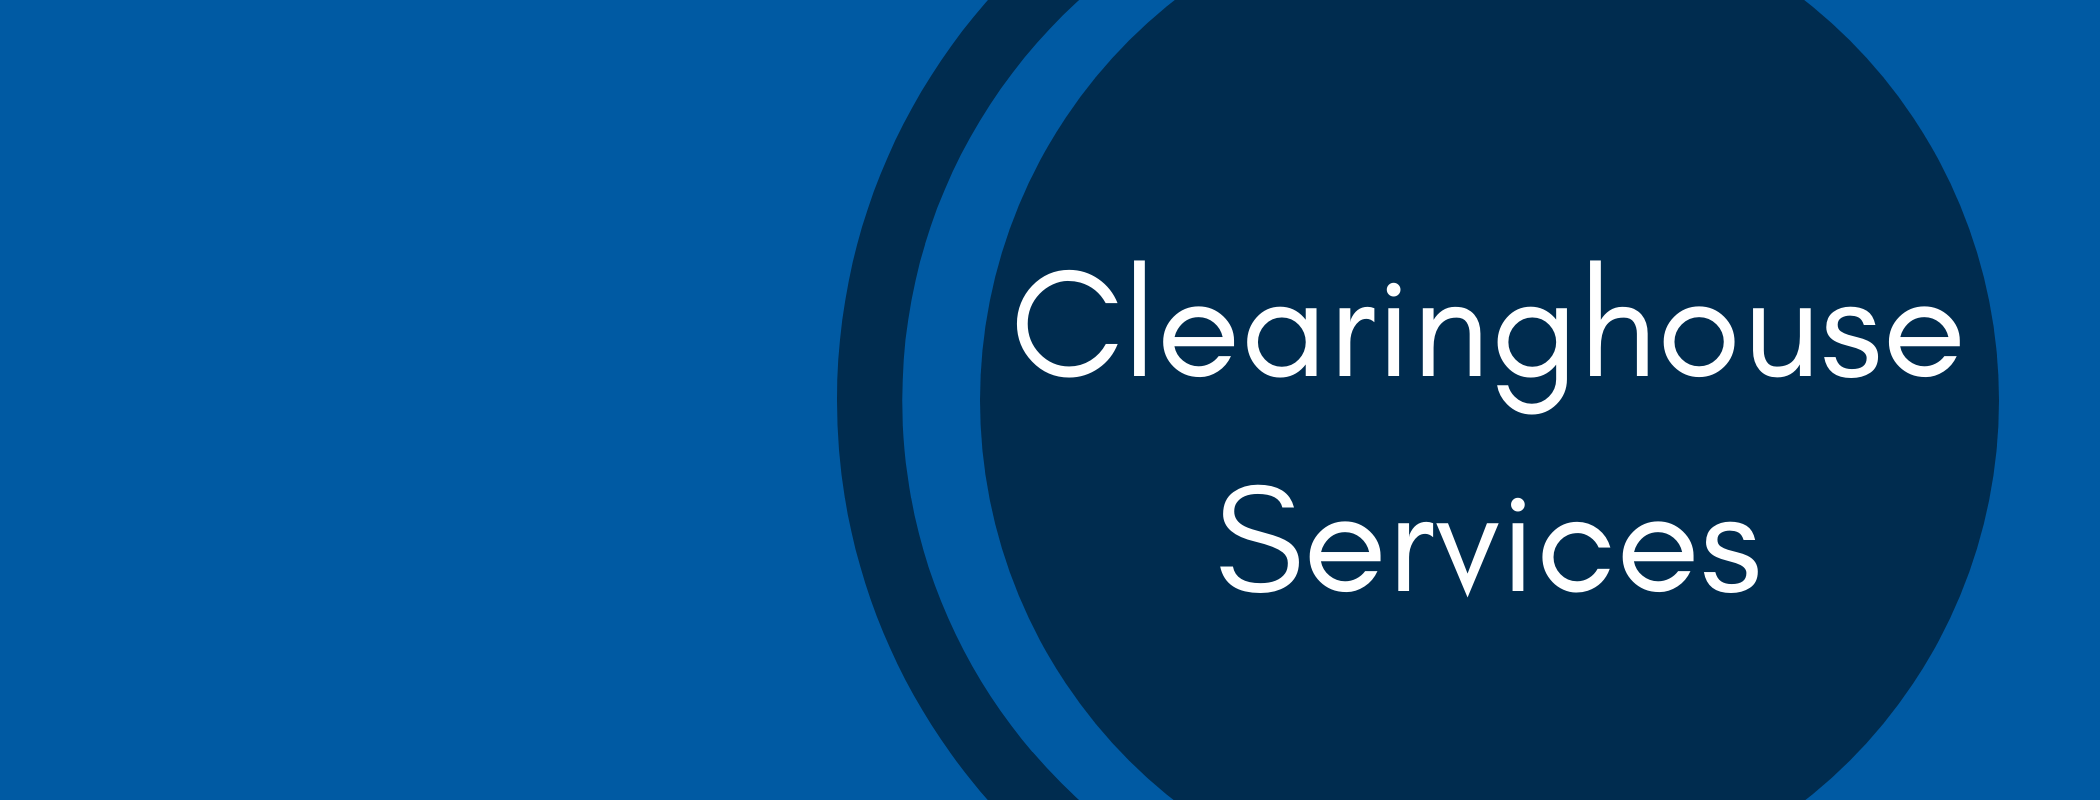 ClearinghouseSvs